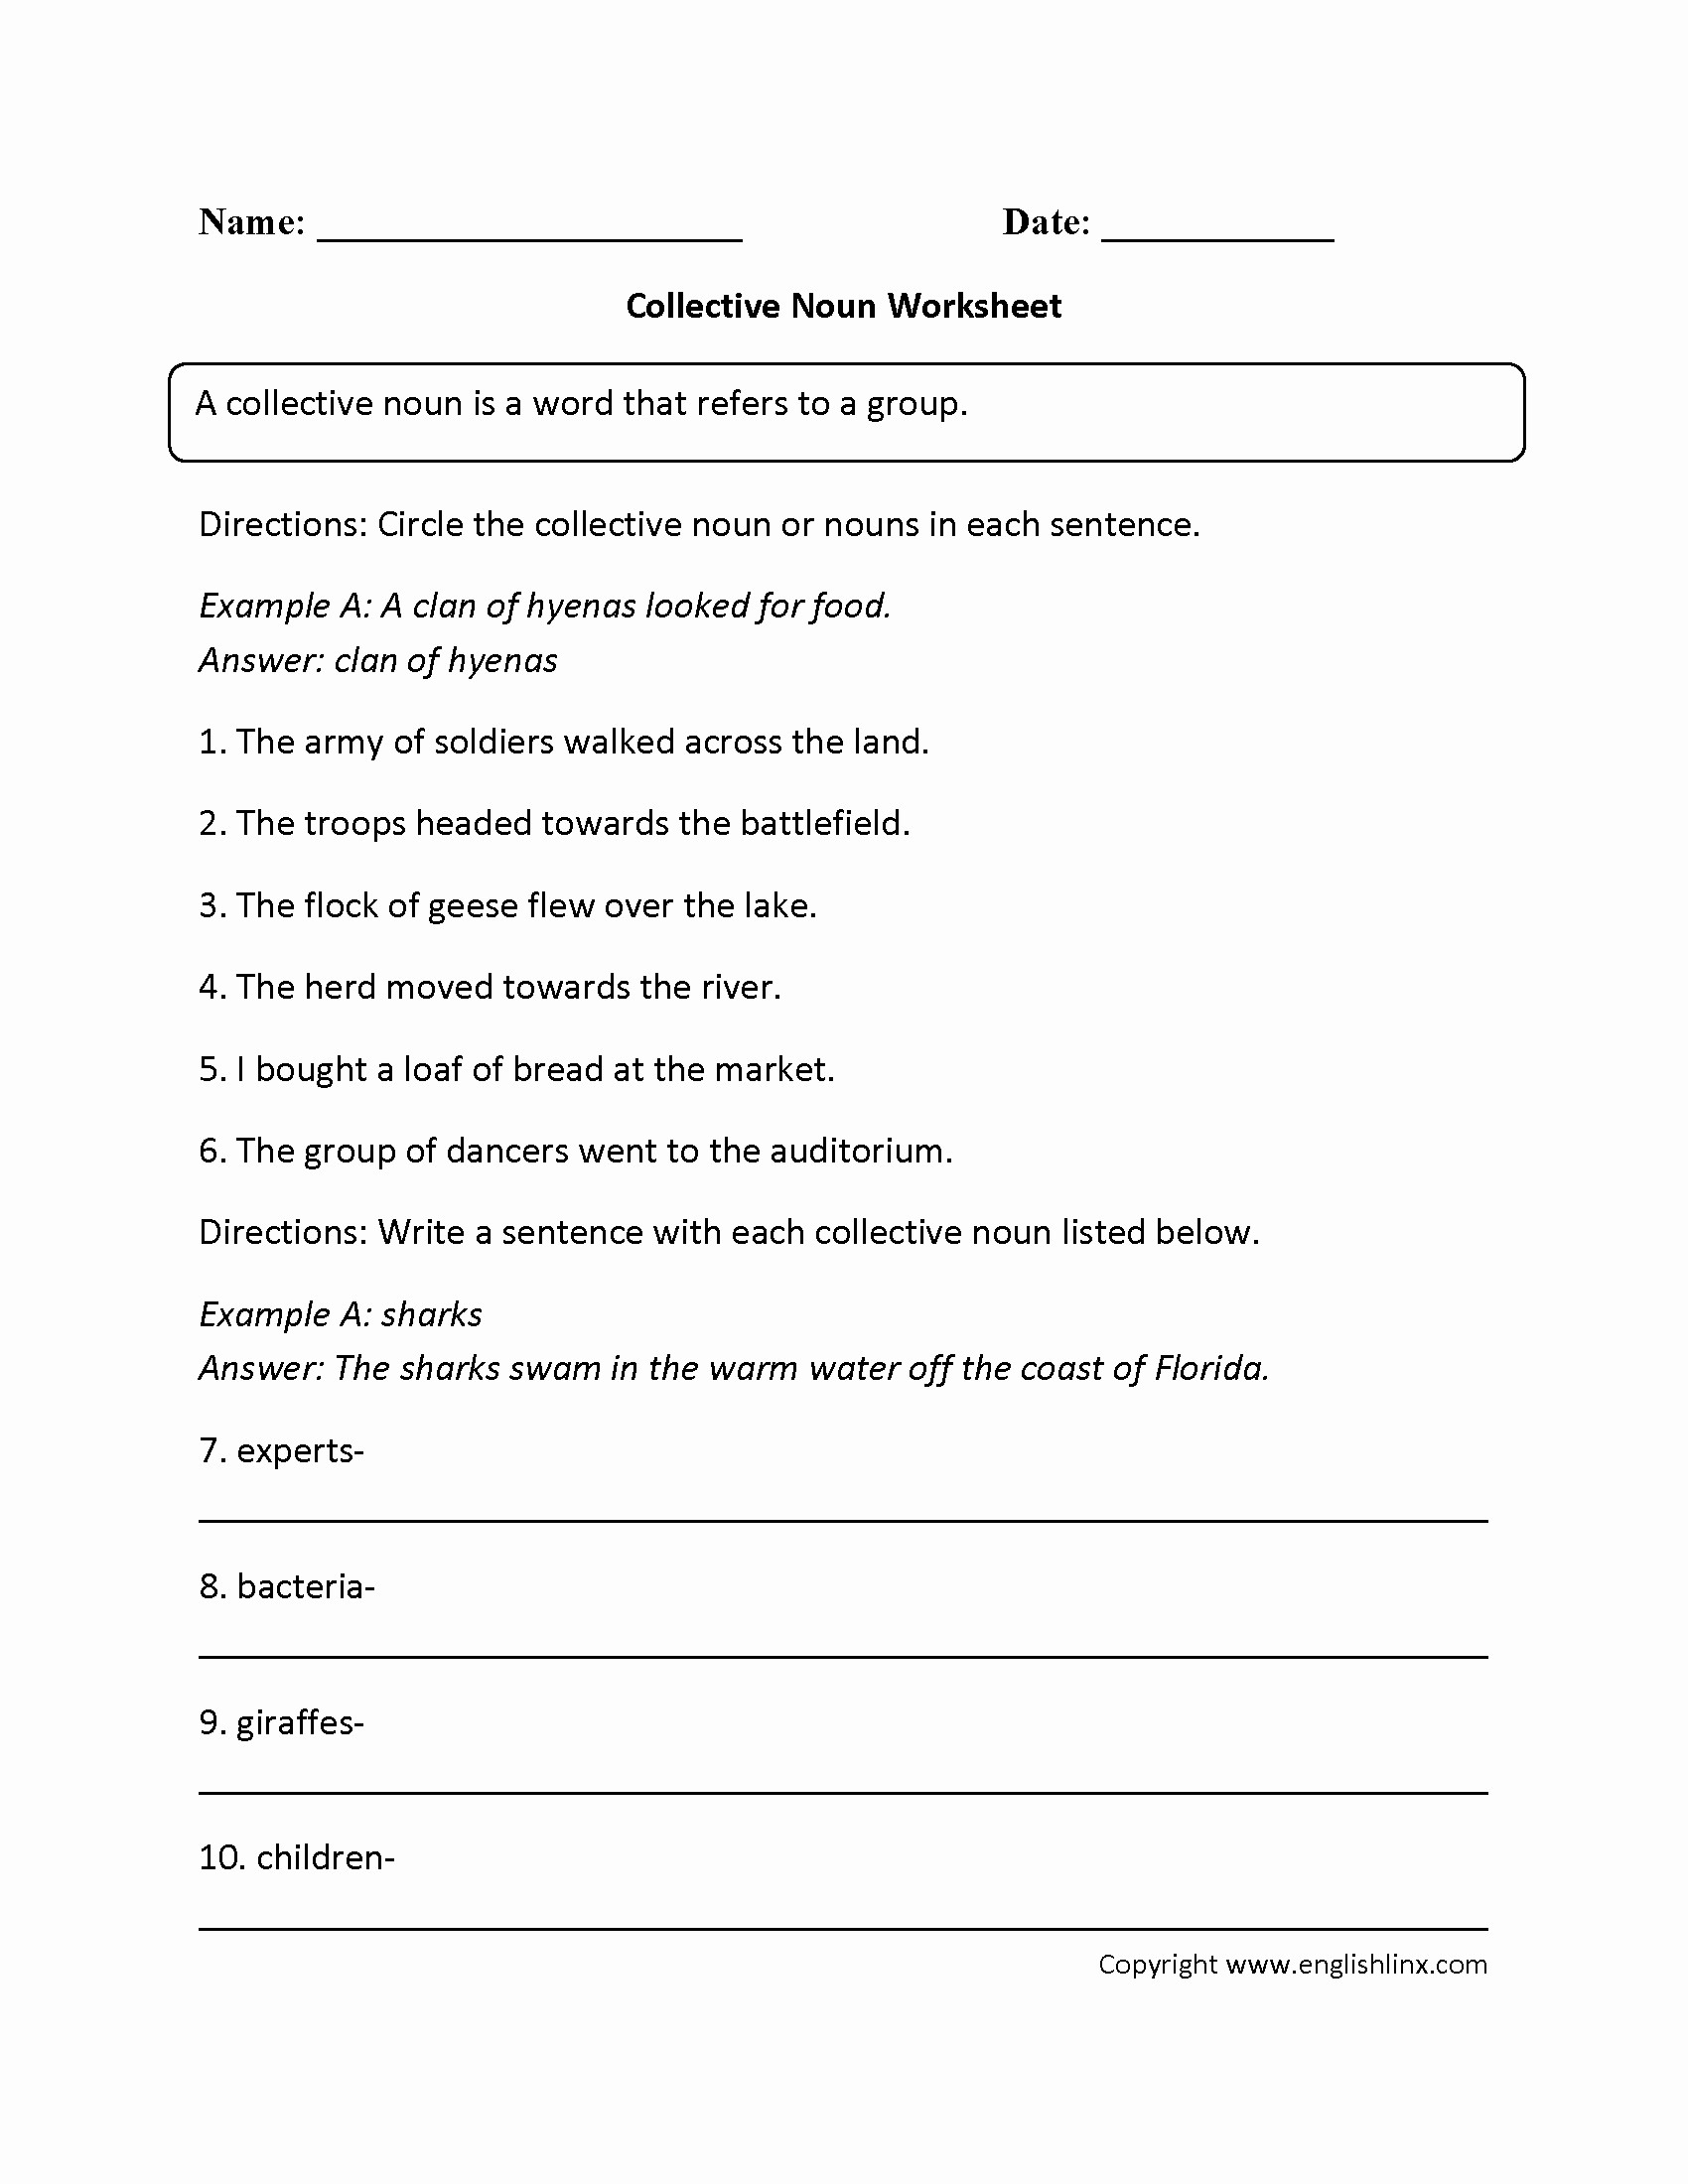 Free Printable English Worksheets For 3rd Grade